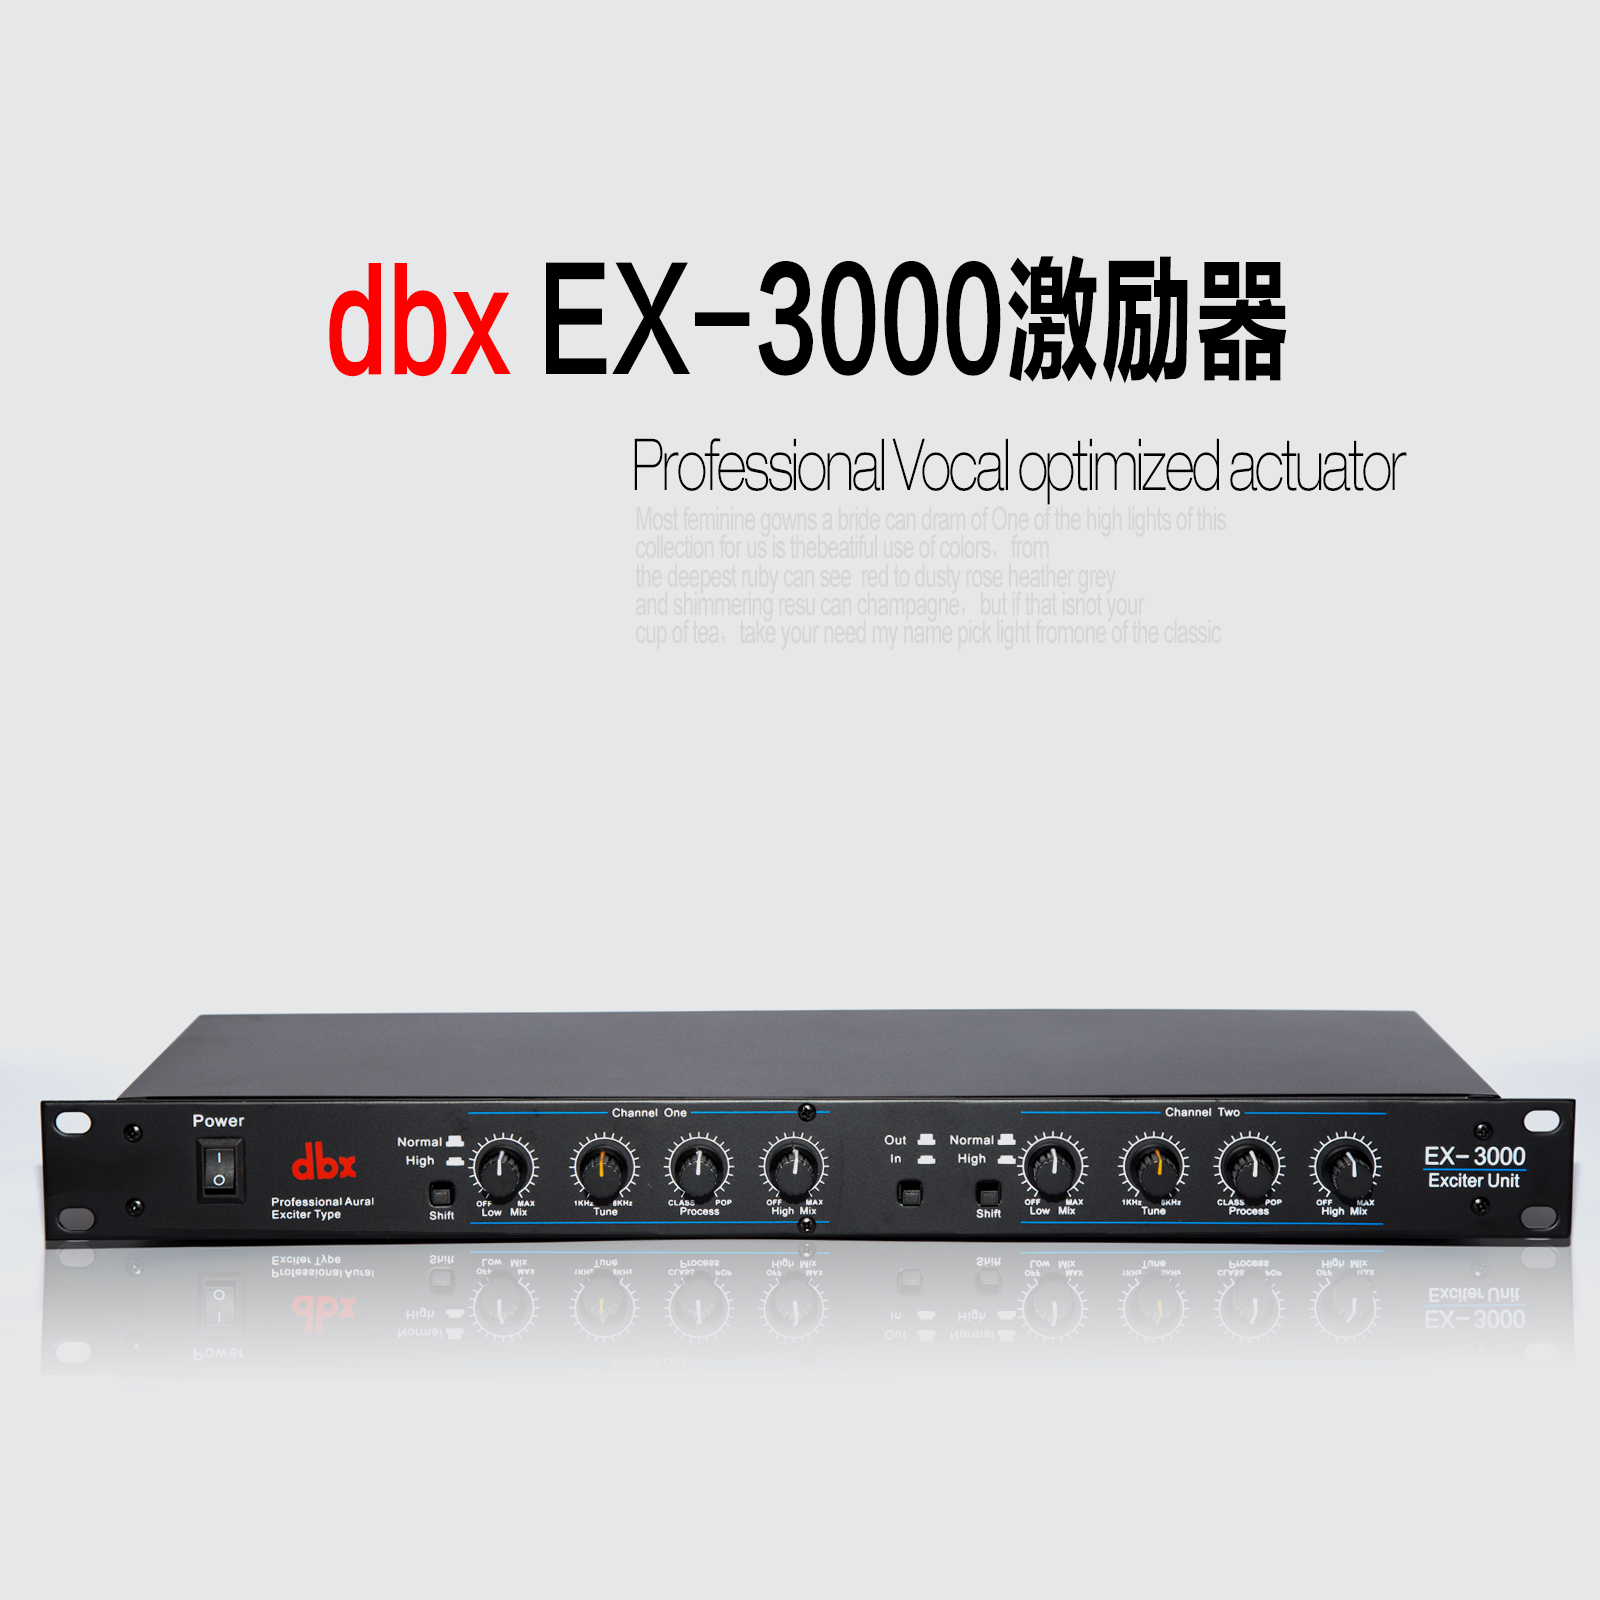 26 54]cheap purchase [The goods stop production and no stock]DBX EX